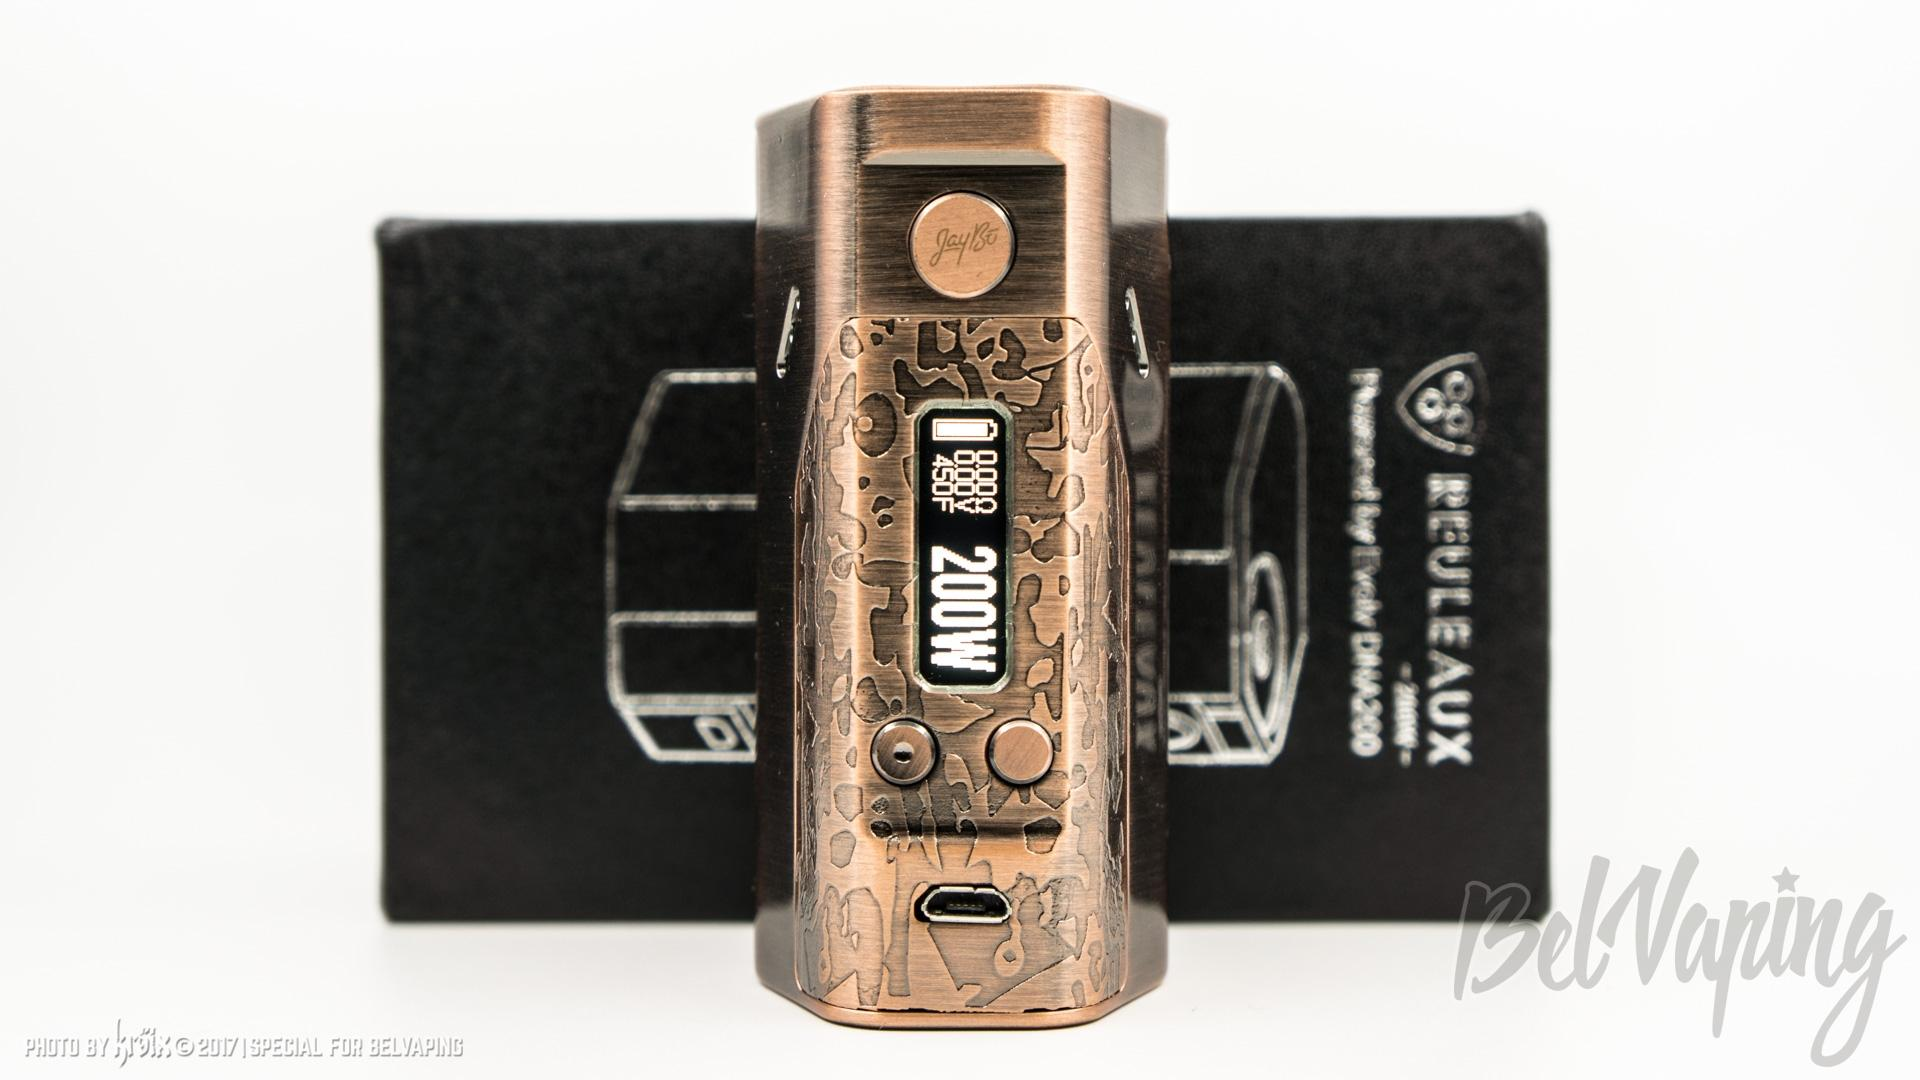 Обзор боксмода Wismec Reuleaux DNA200 Limited Edition